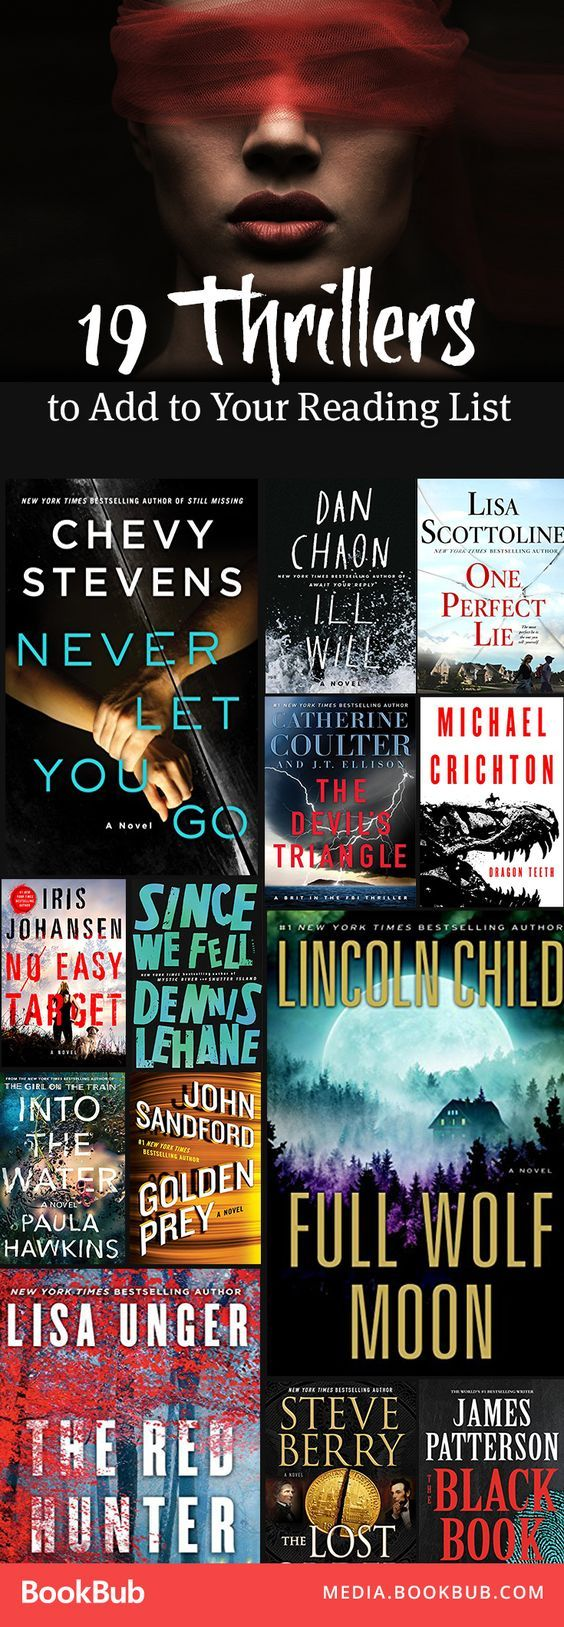 best ideas about michael crichton interesting 19 thriller books to add to your reading list in 2017 including new releases from